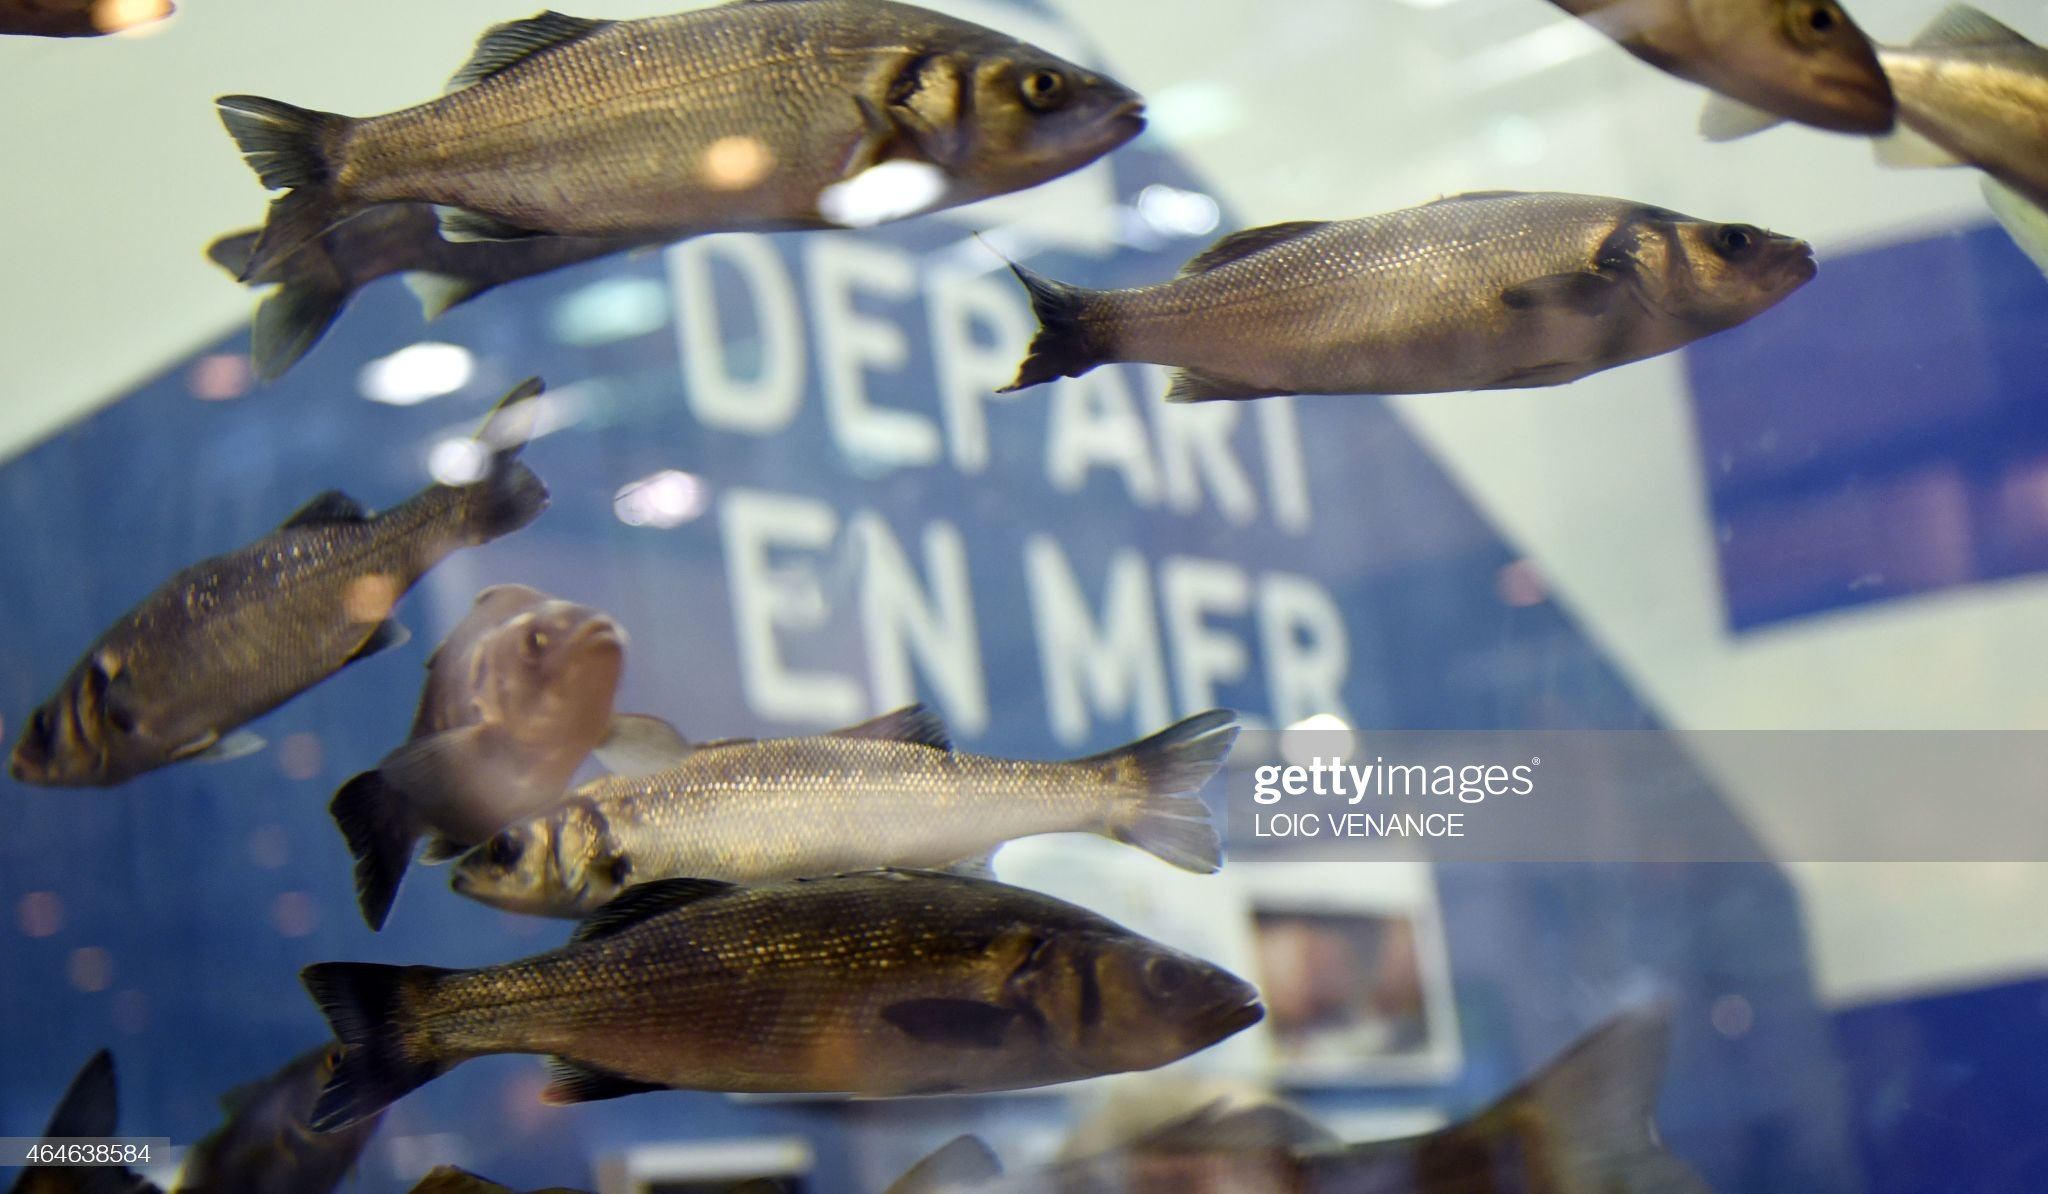 Inhibition of cytochrome P450 enzymes by enrofloxacin in the sea bass <i>(Dicentrarchus labrax)</i>